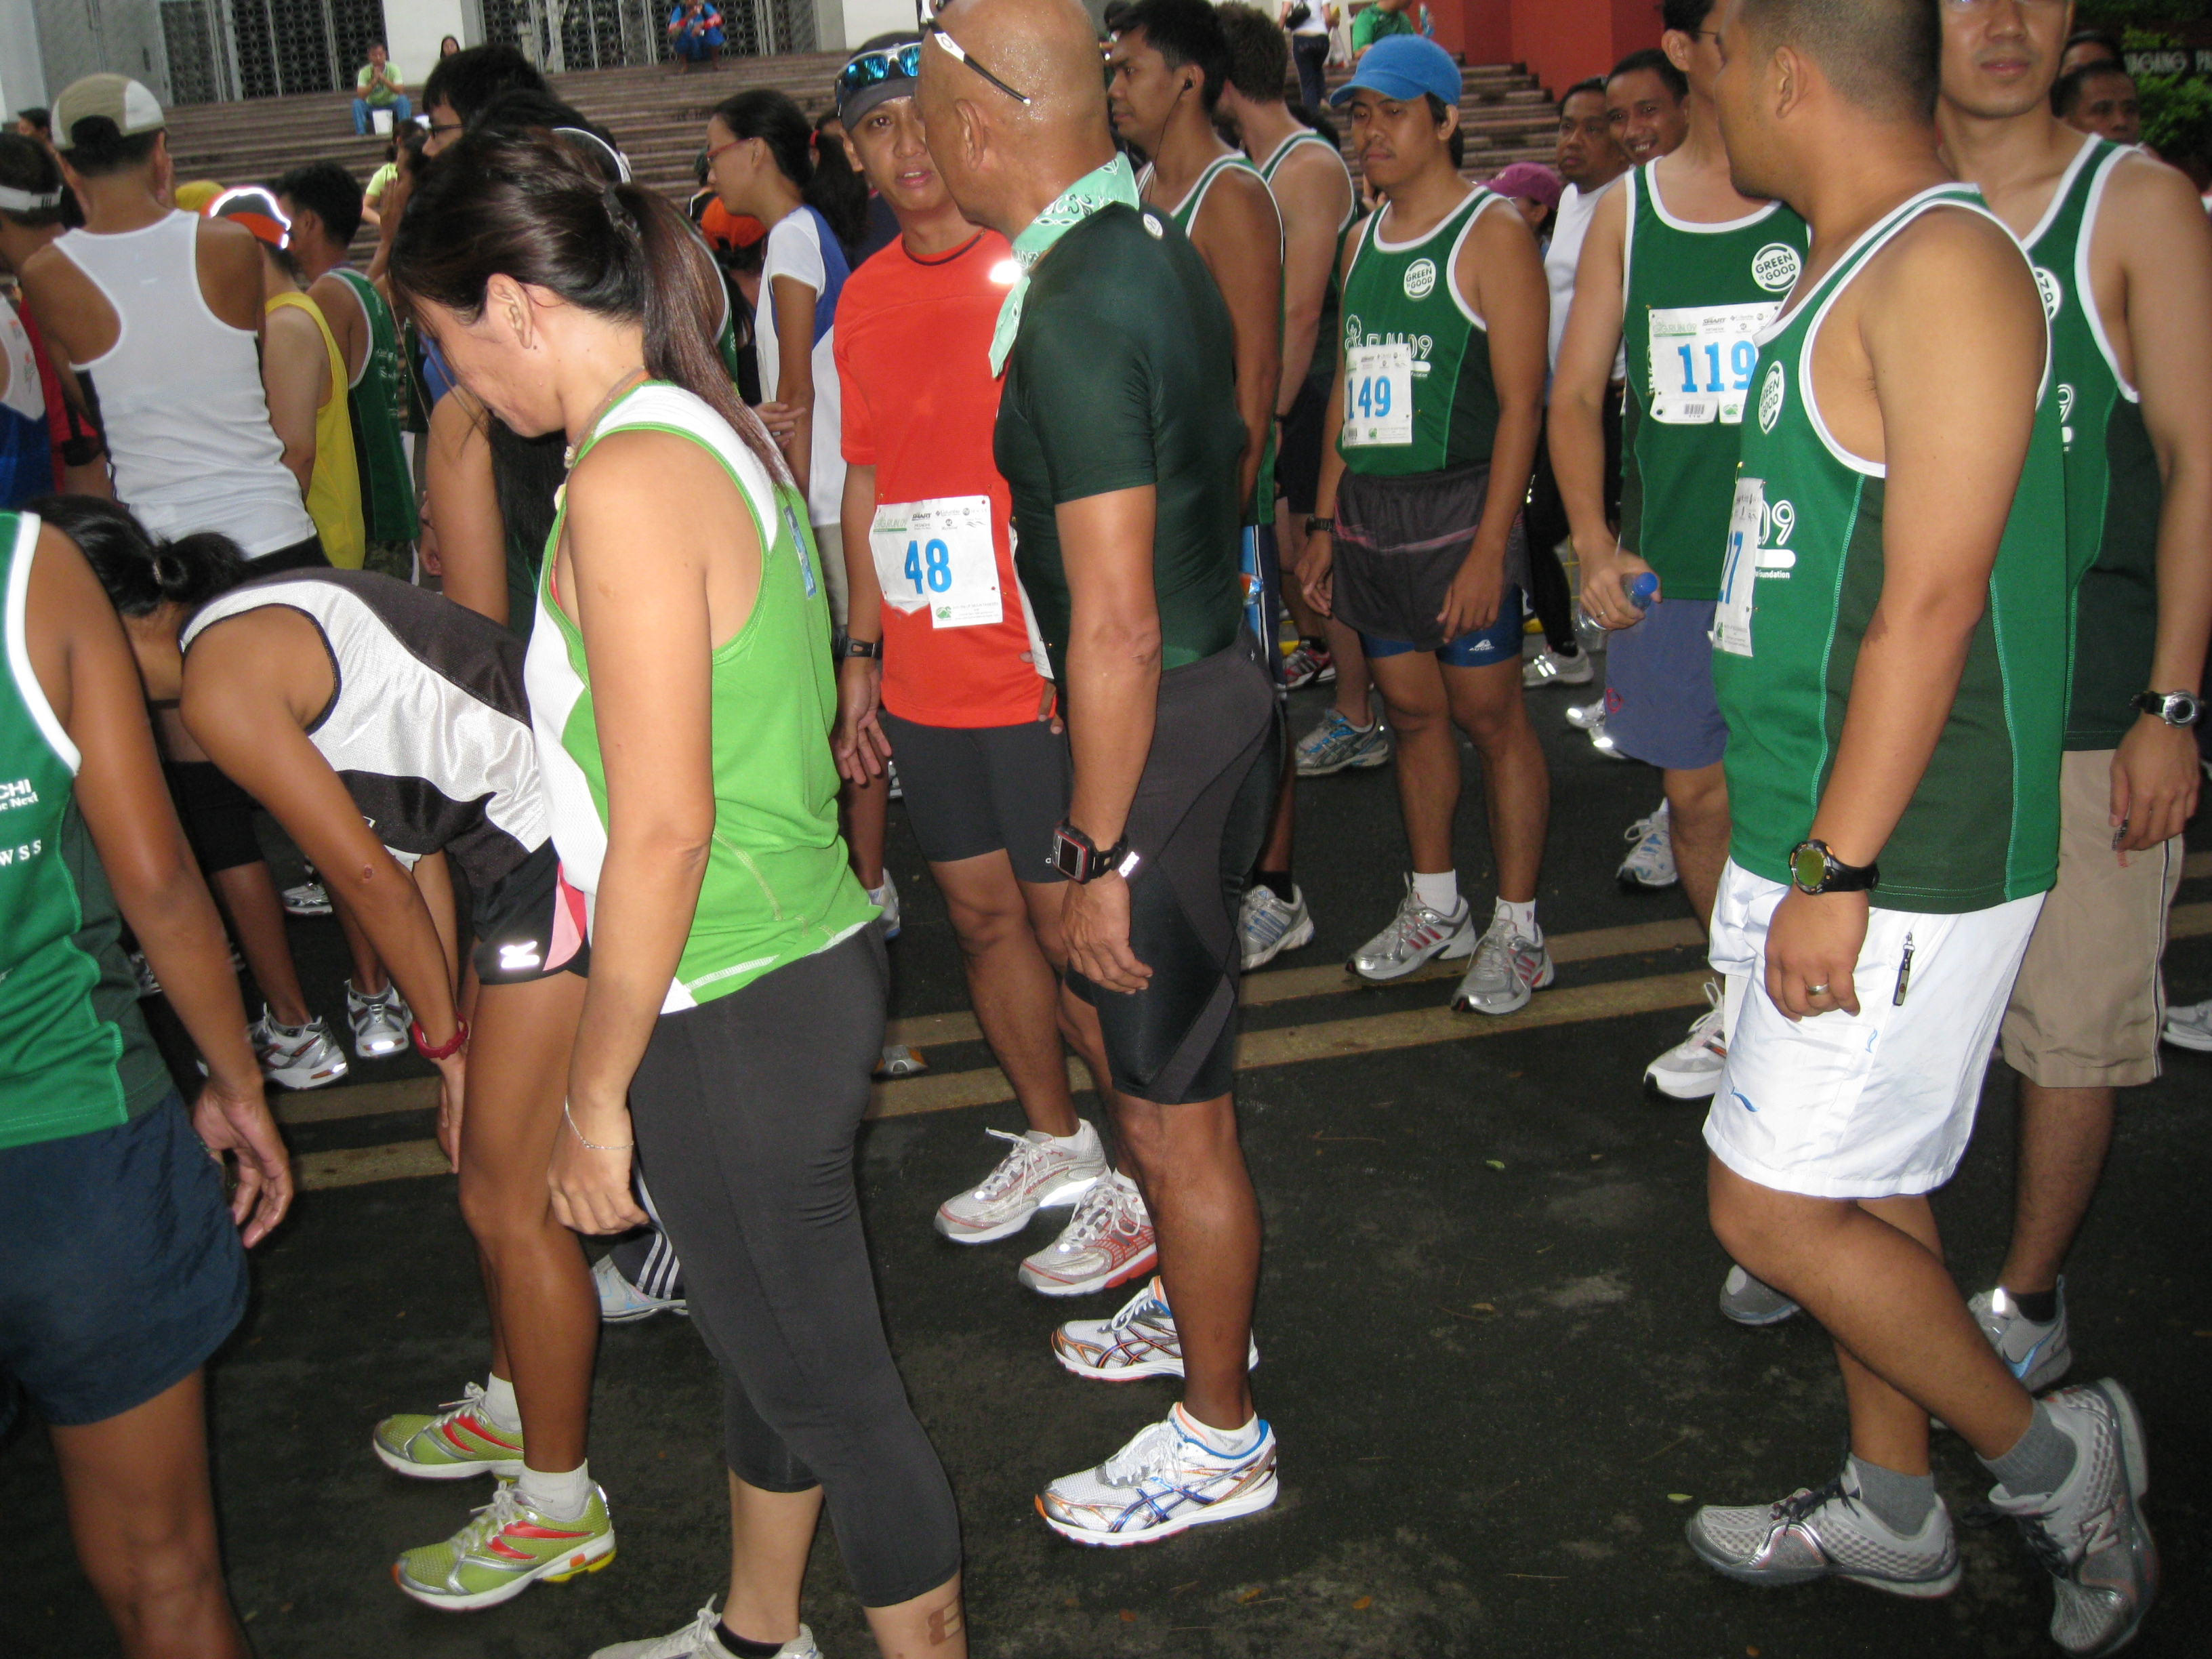 Talking With Some Runners At The Starting Area